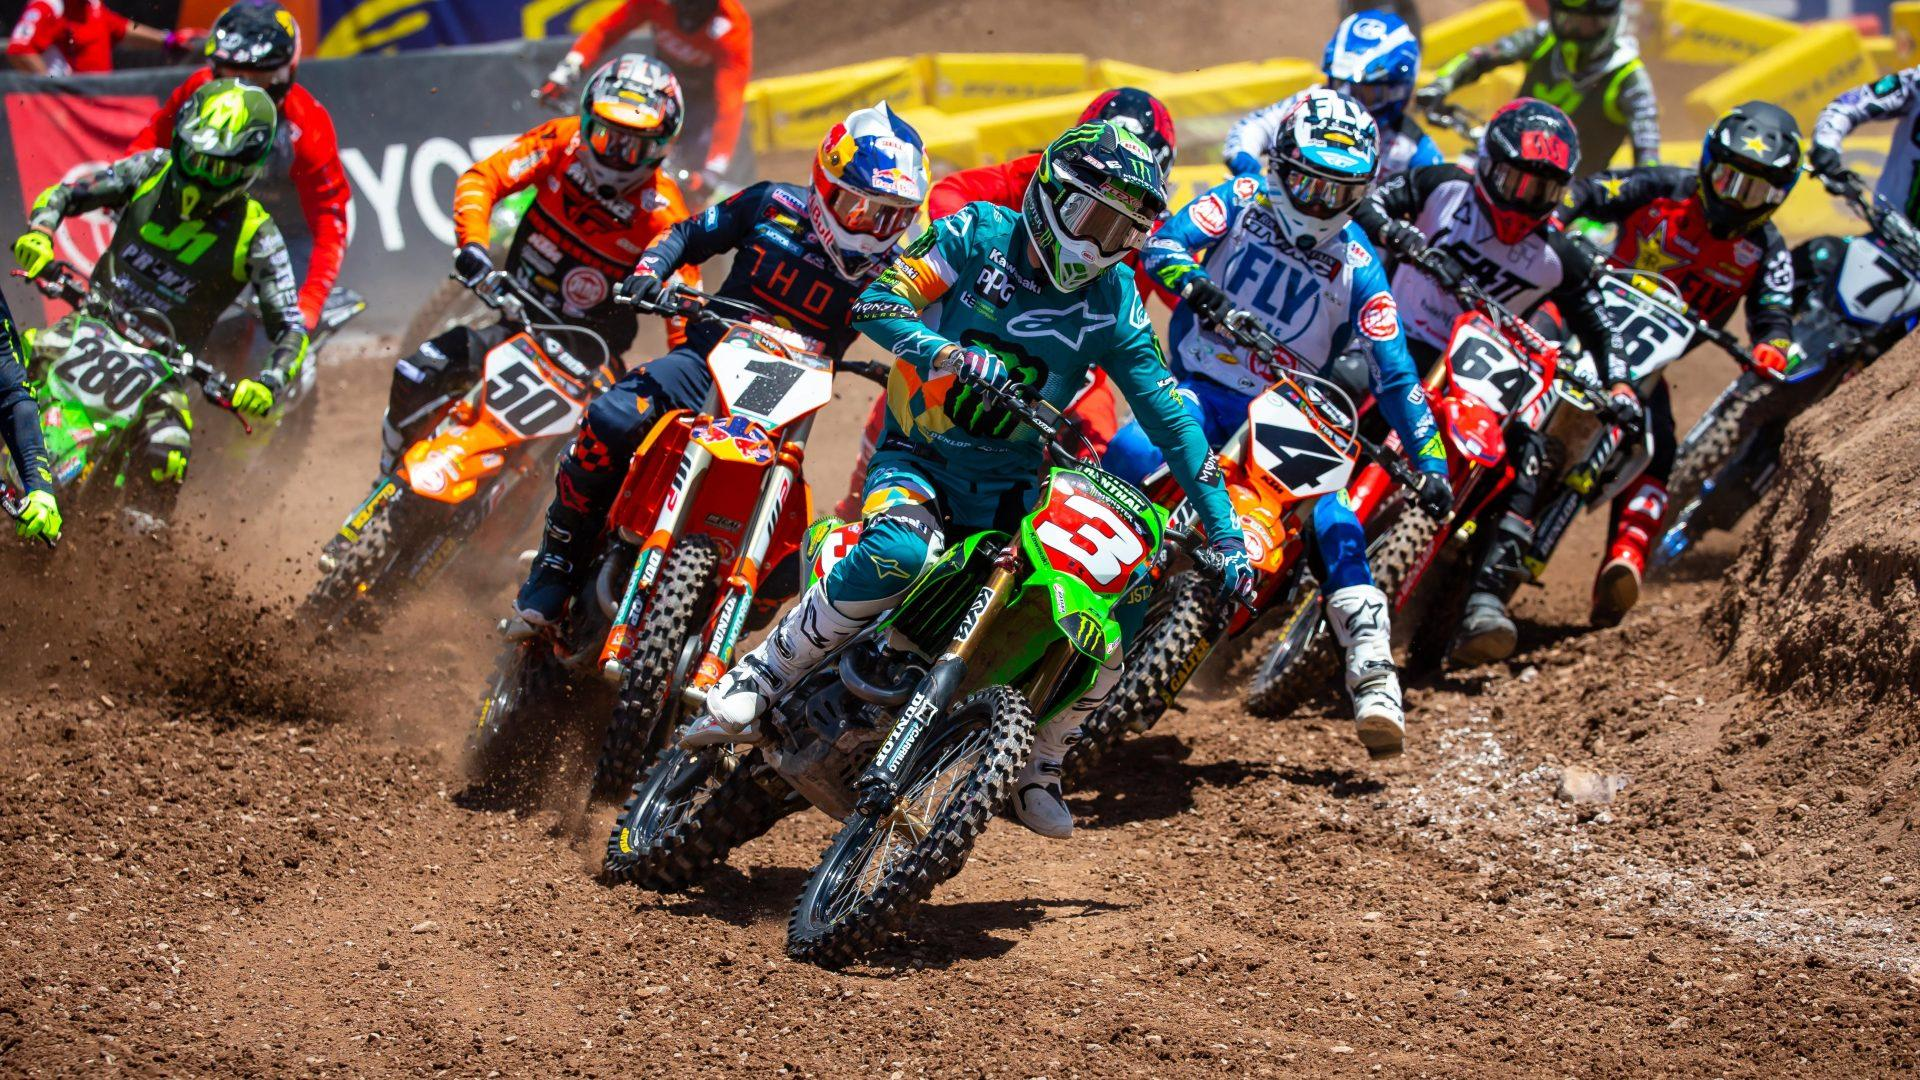 Today S Supercross Round 12 Race In Salt Lake City Start Time Tv And Info